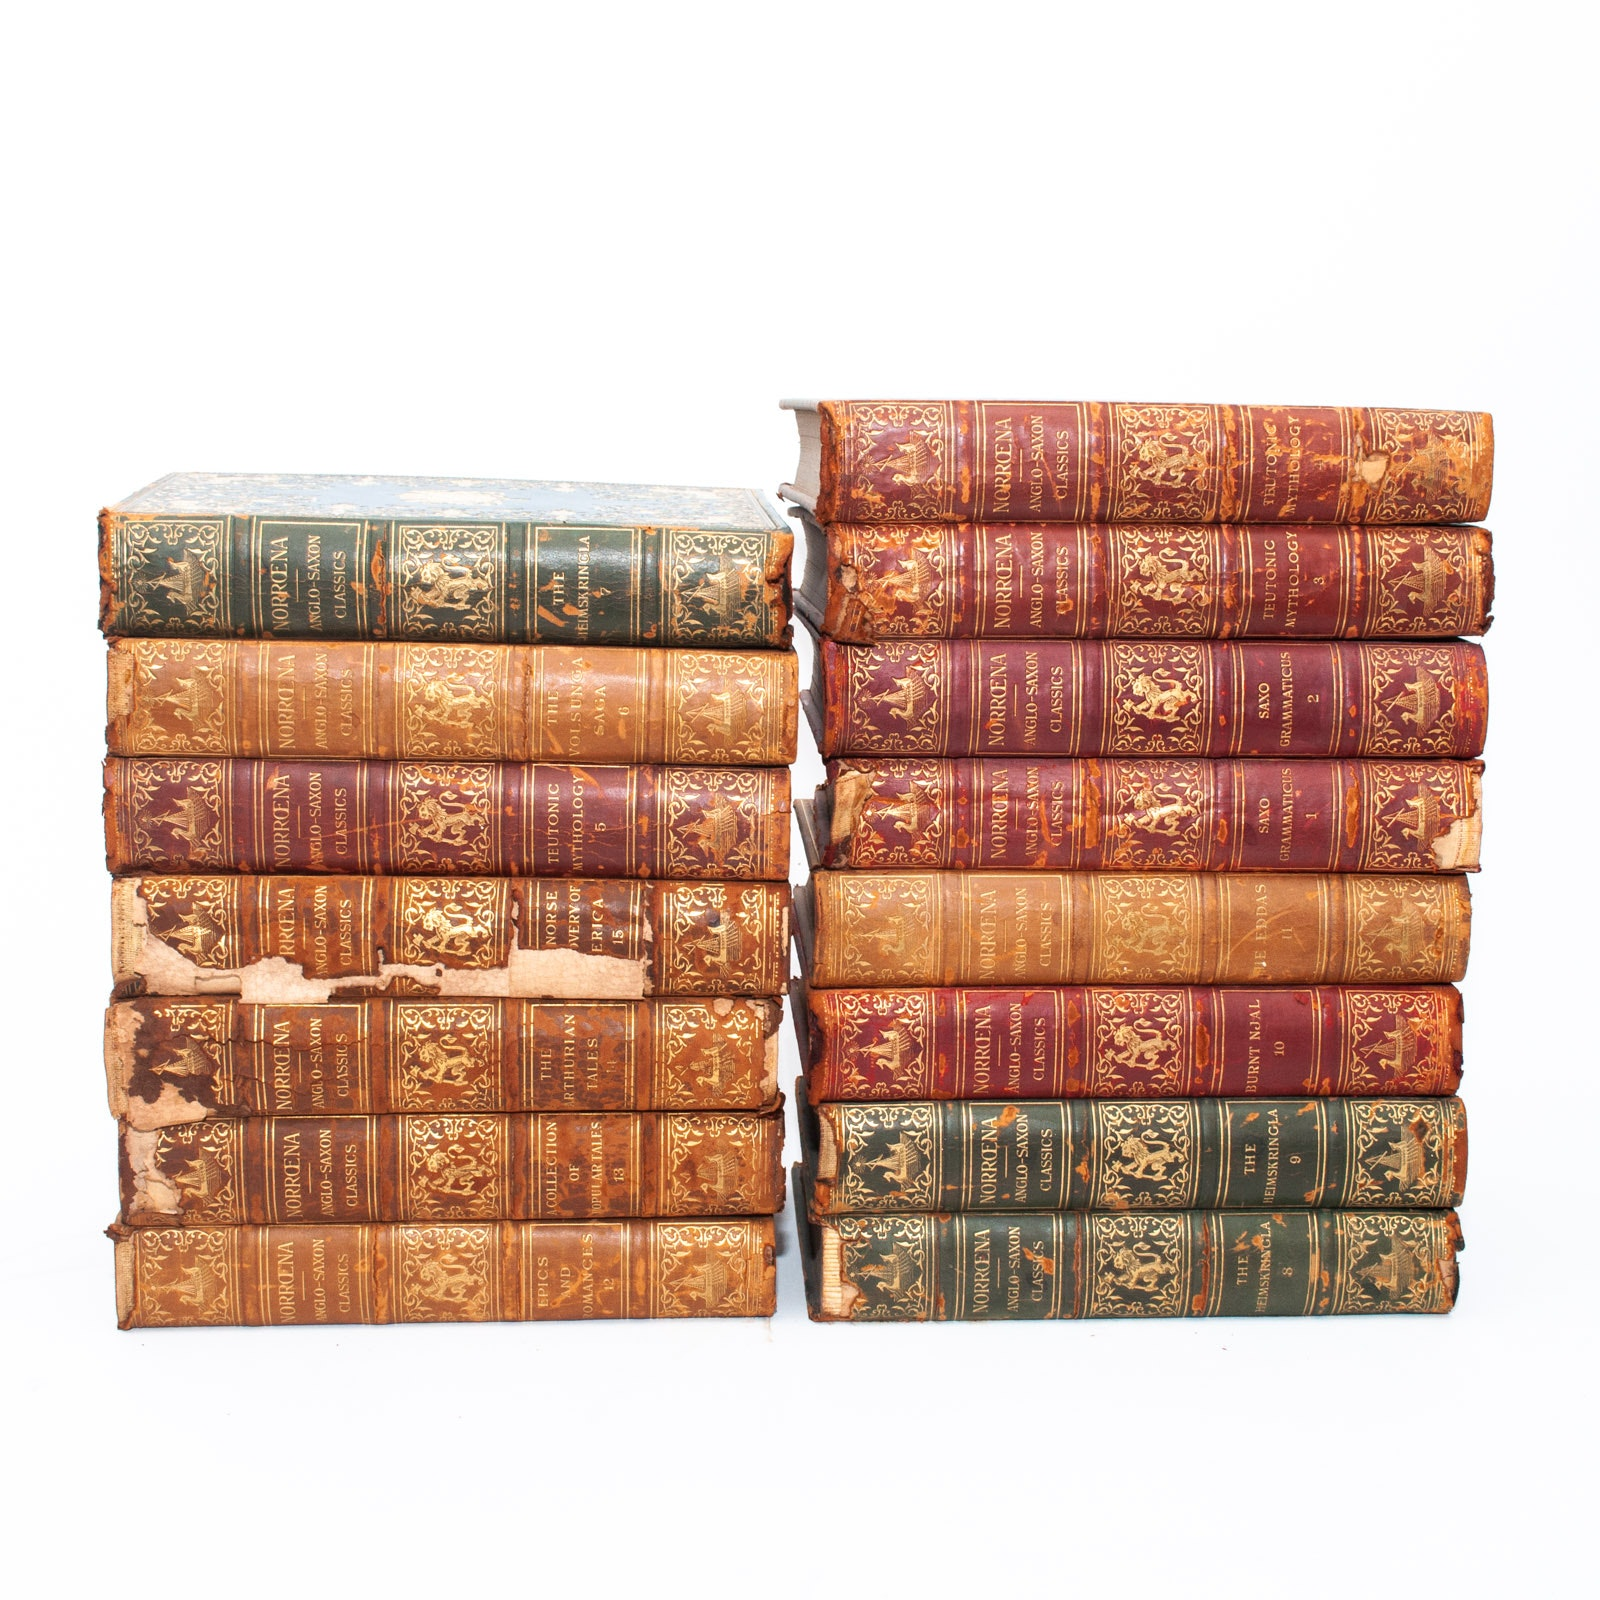 1907 Complete Set of Imperial Edition Norroena Society Anglo-Saxon Classics